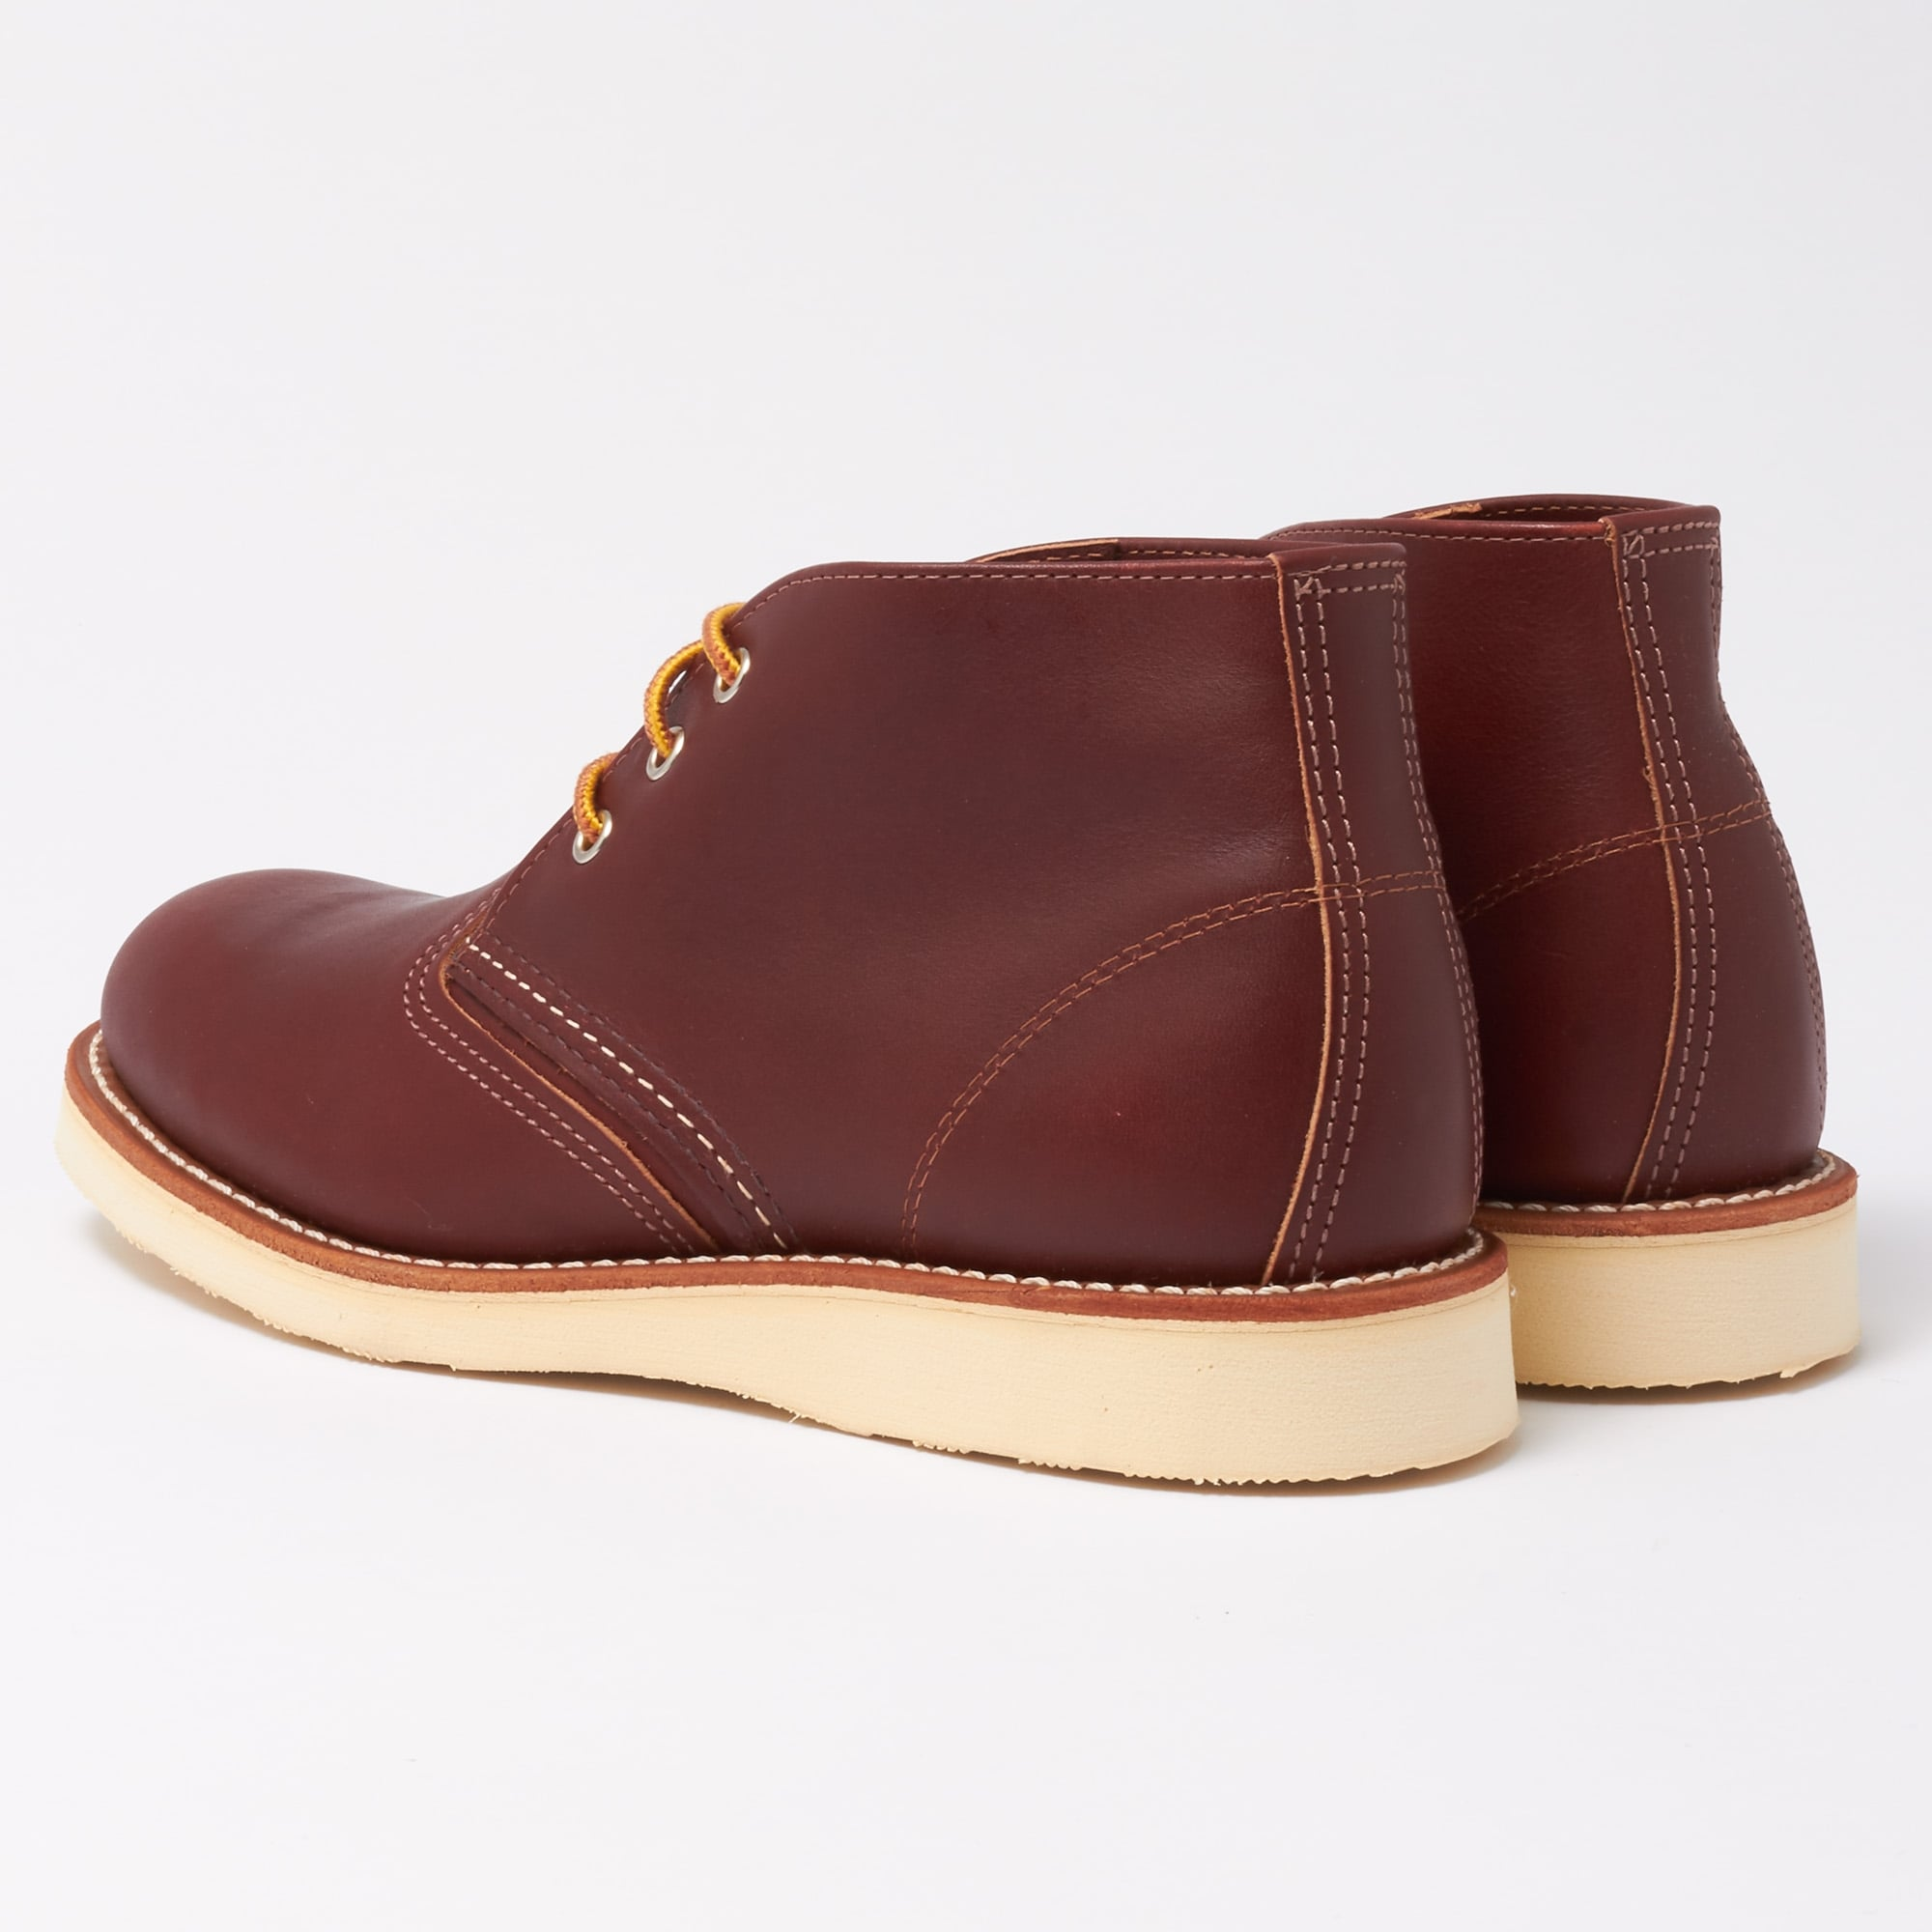 0c862a85b44 Red Wing Red Wing Copper Chukka Boot 03139